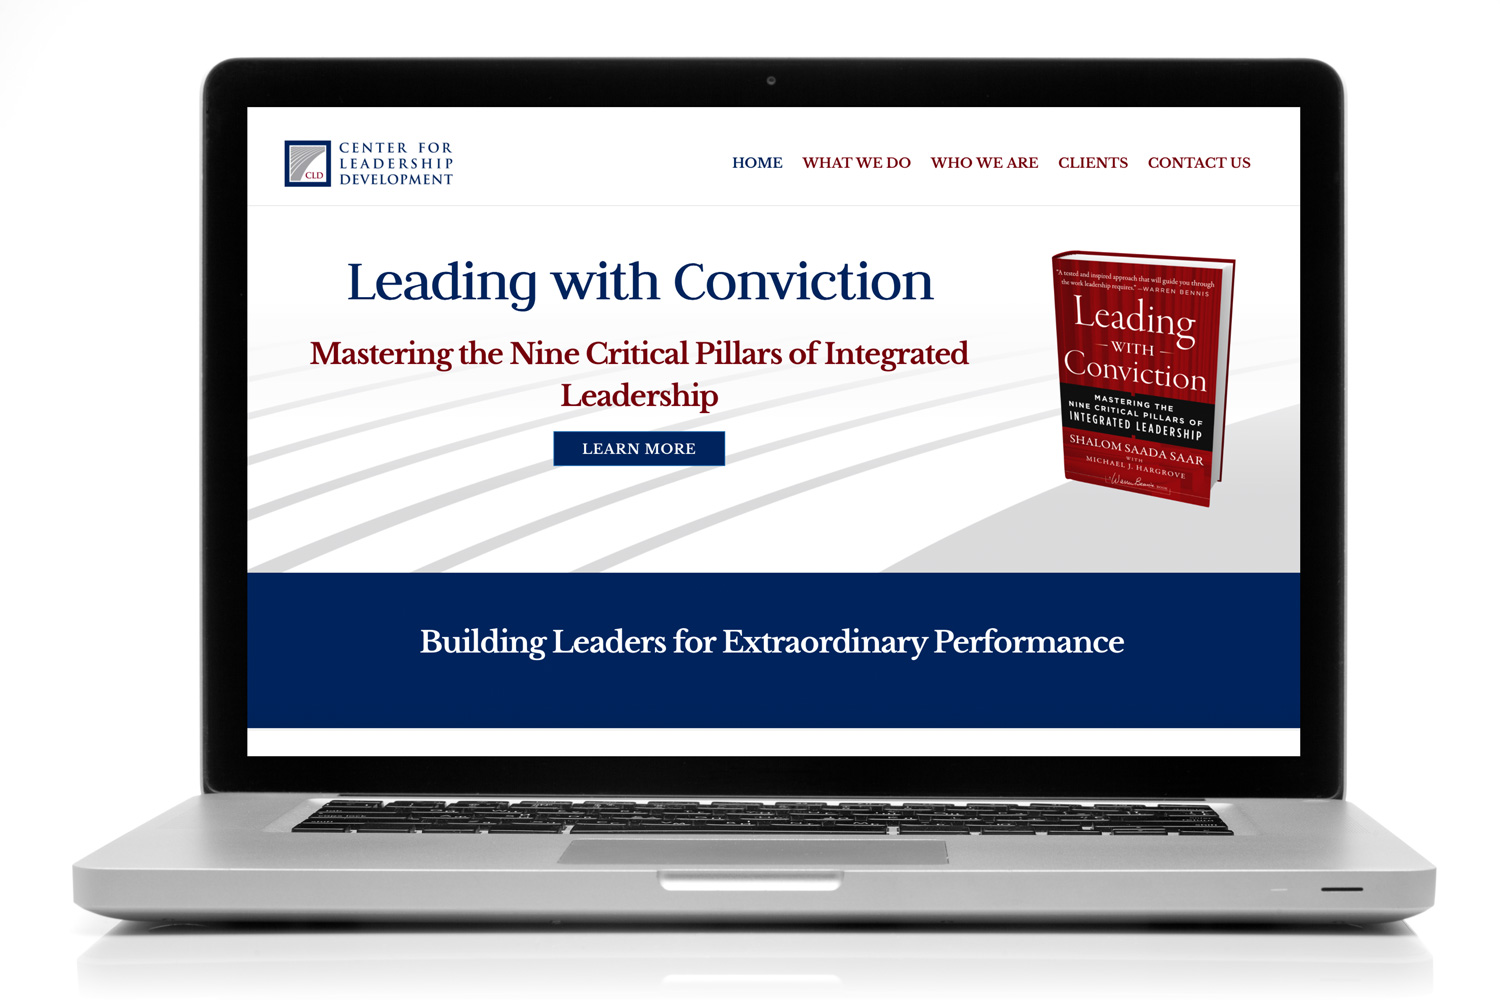 Center for Leadership Development